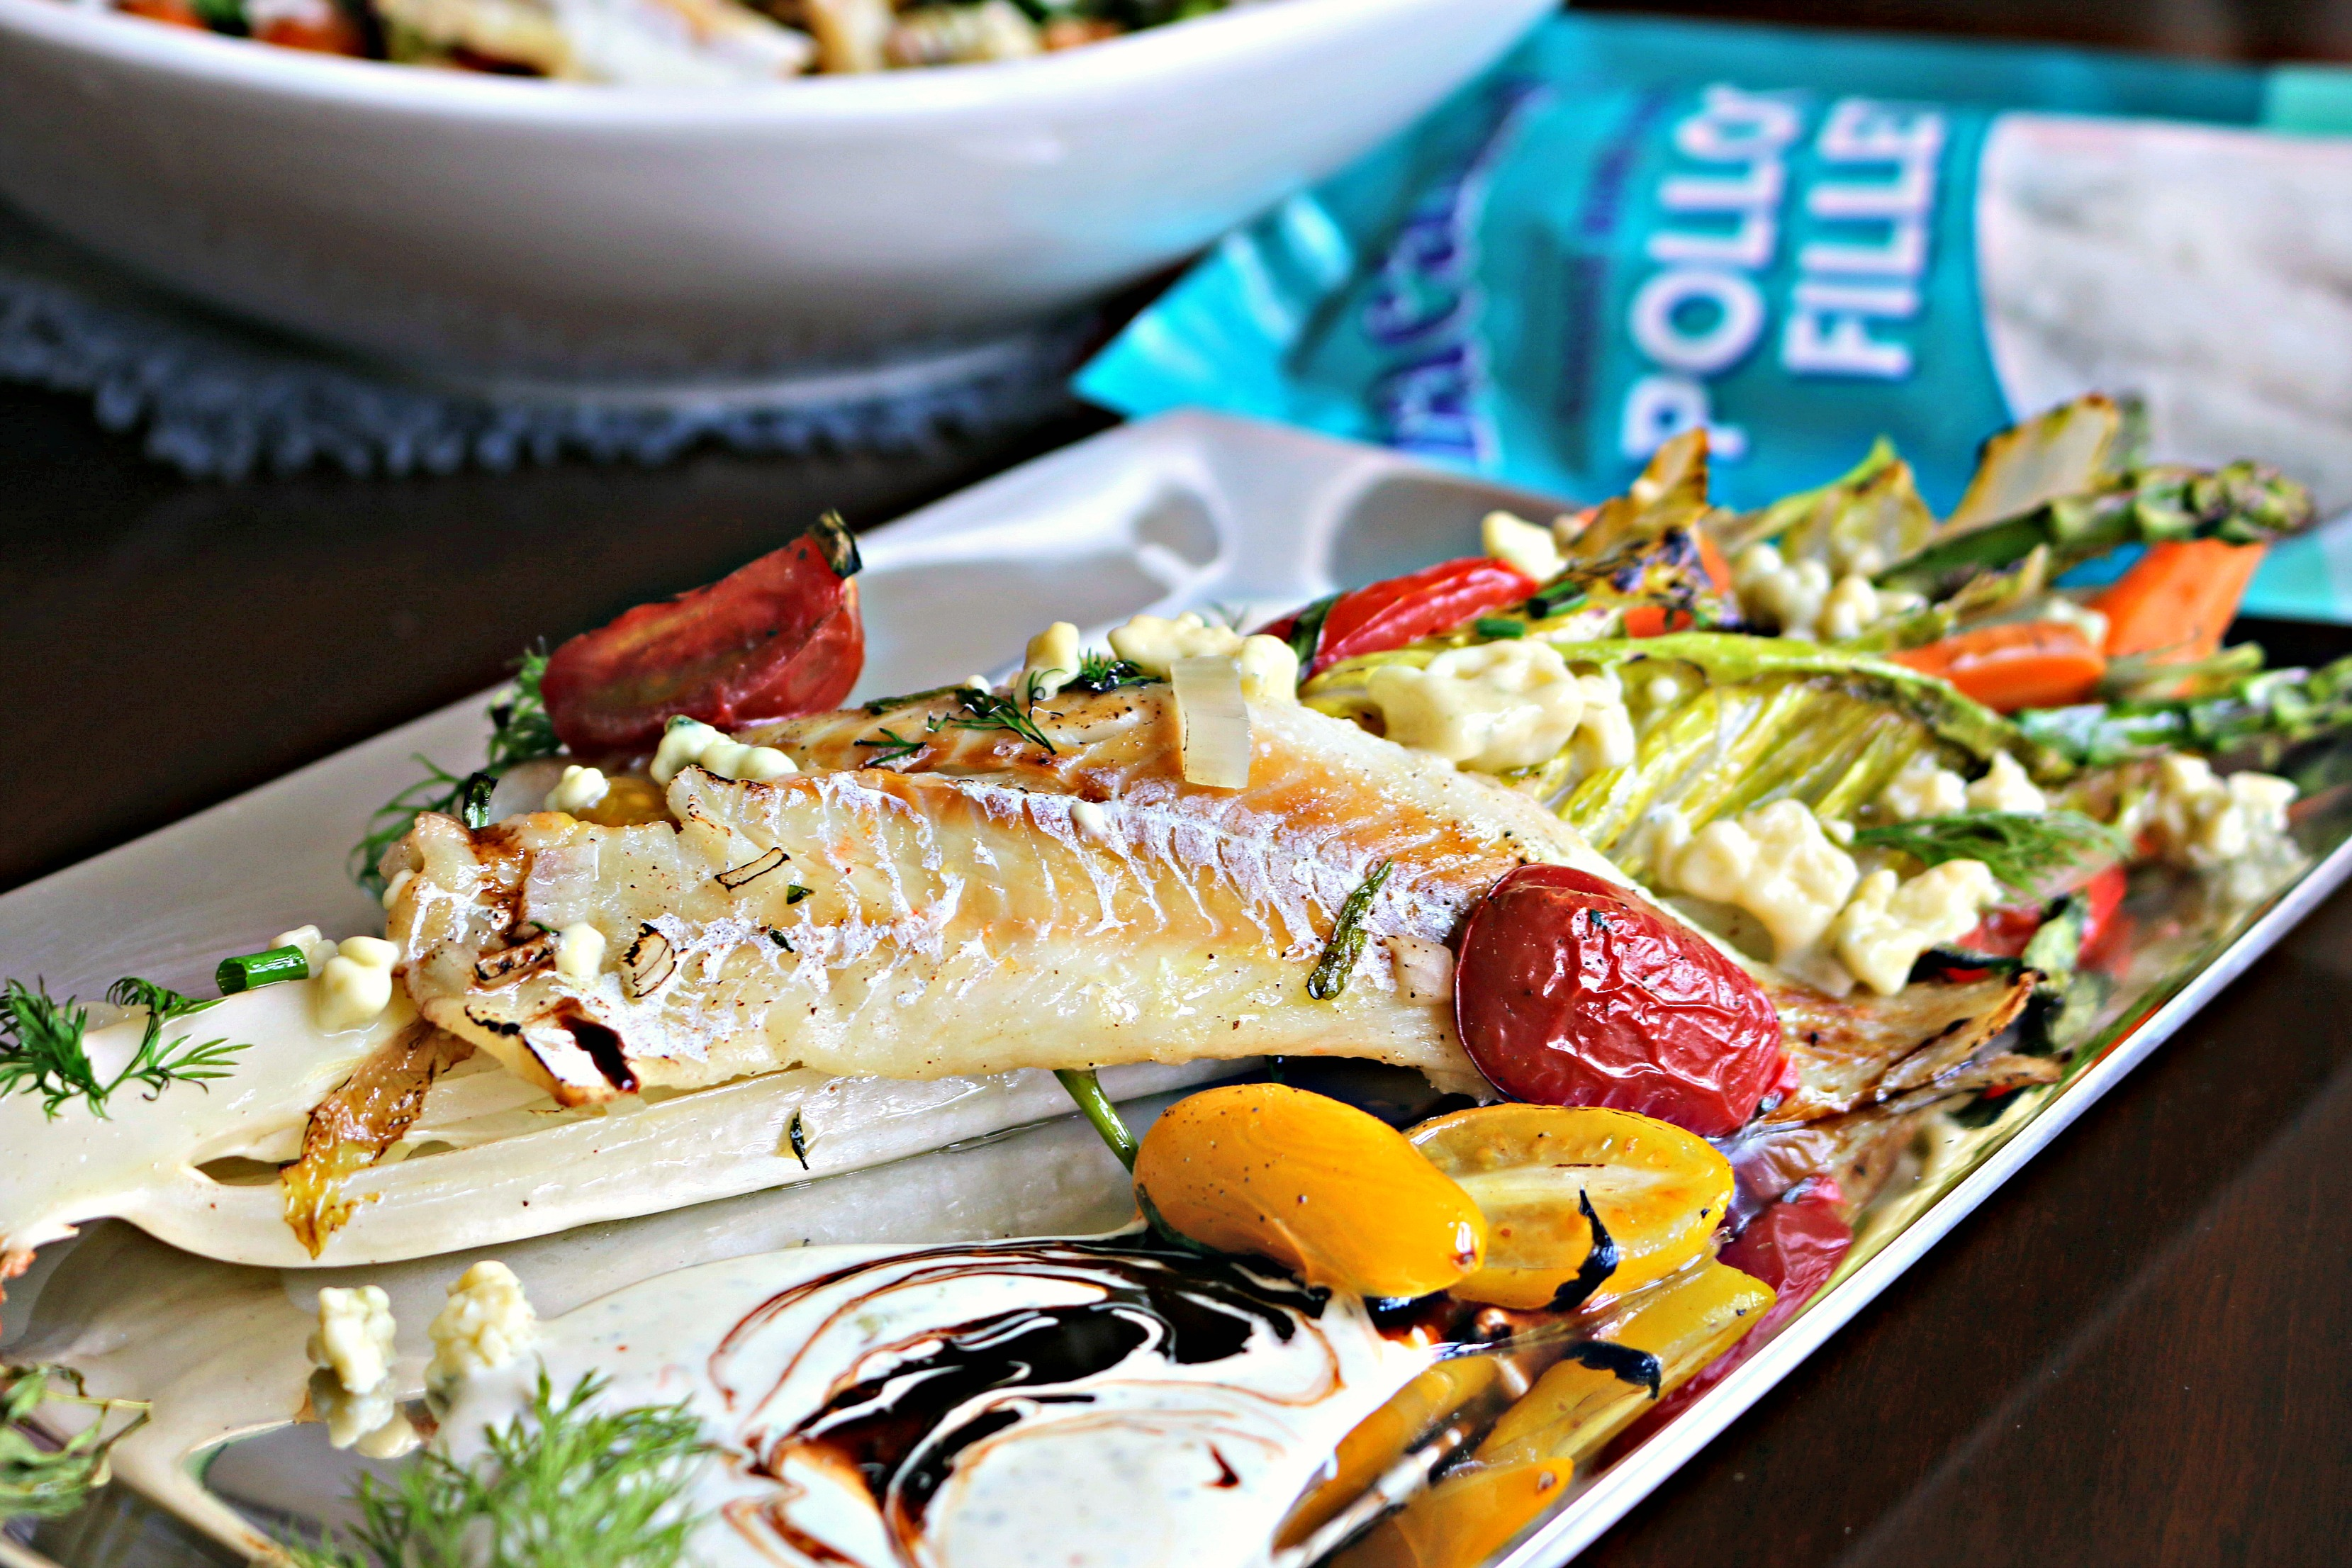 Alaskan pollock fillets with grilled romaine salad is a delicious, healthy, and easy grilled fish dinner. The perfect summer grilling recipe!